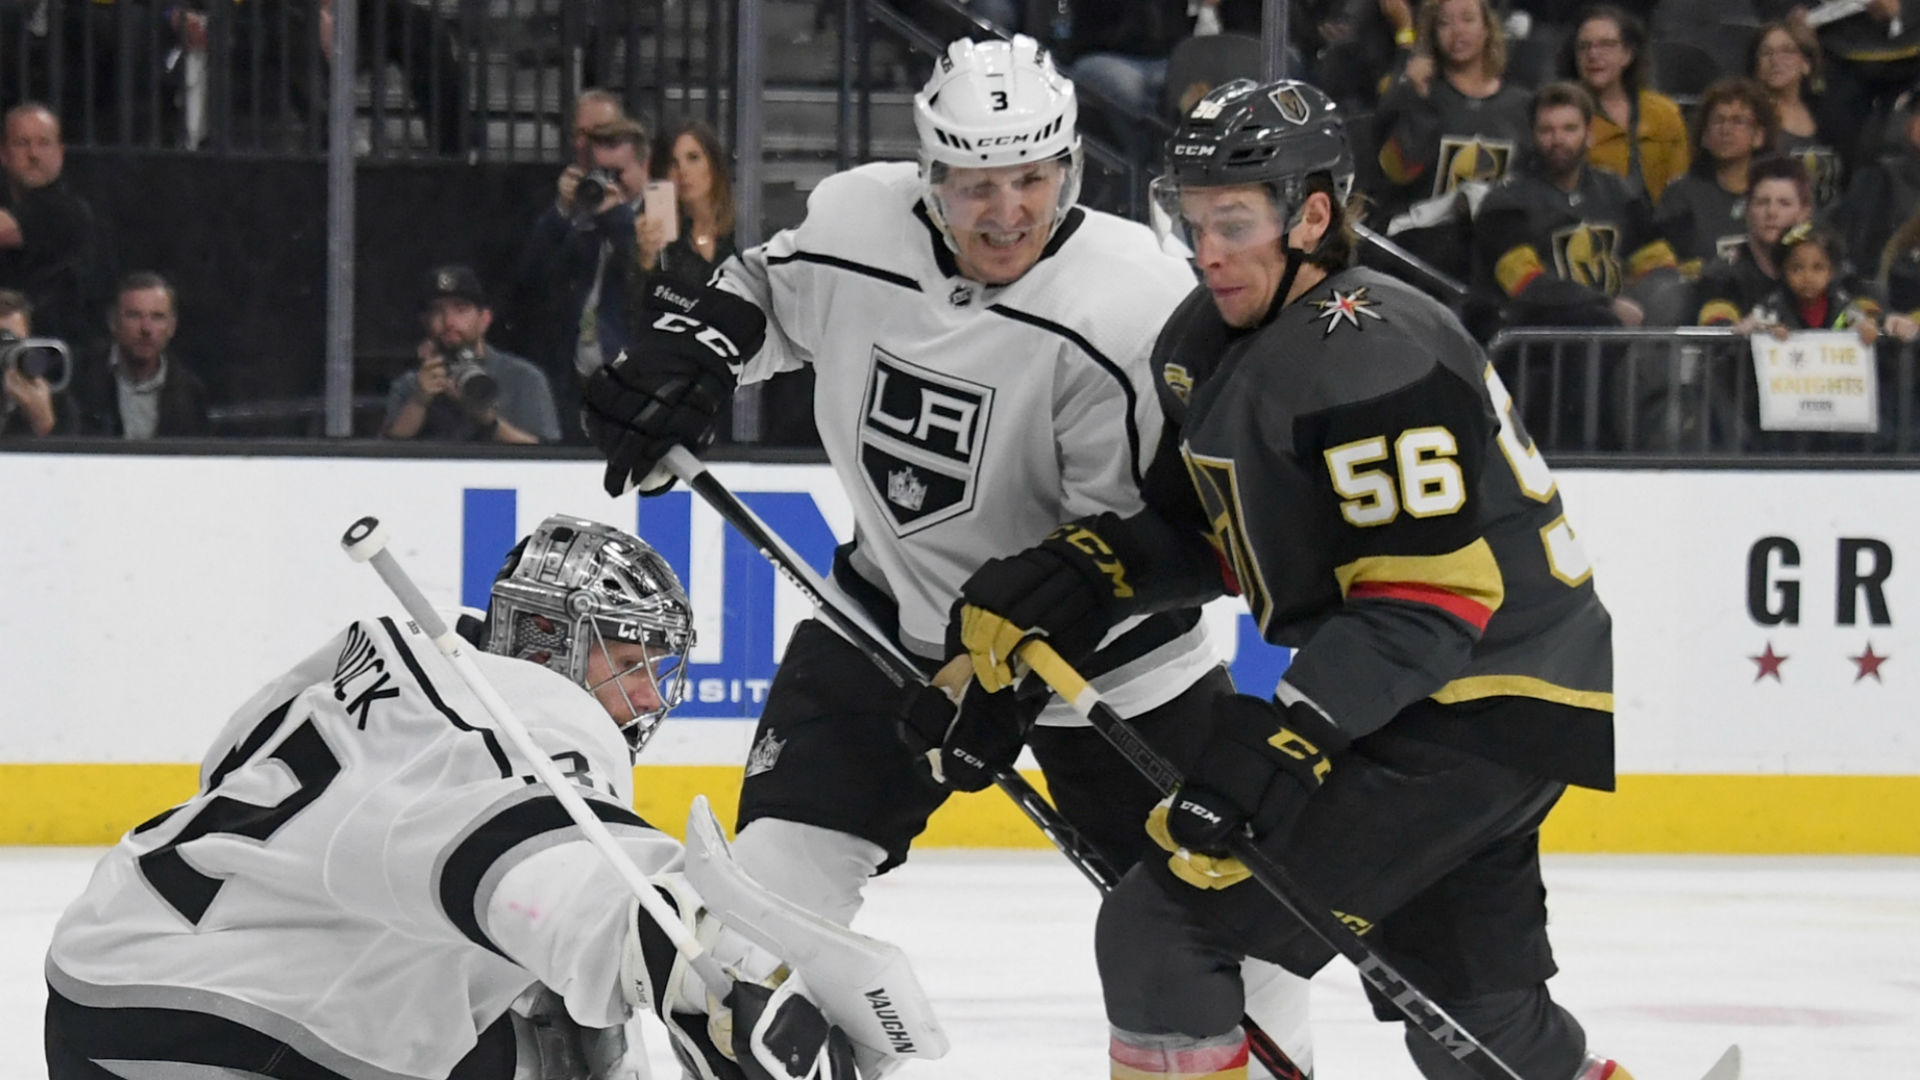 Kings try to avoid 0-2 hole vs. Knights without suspended Doughty